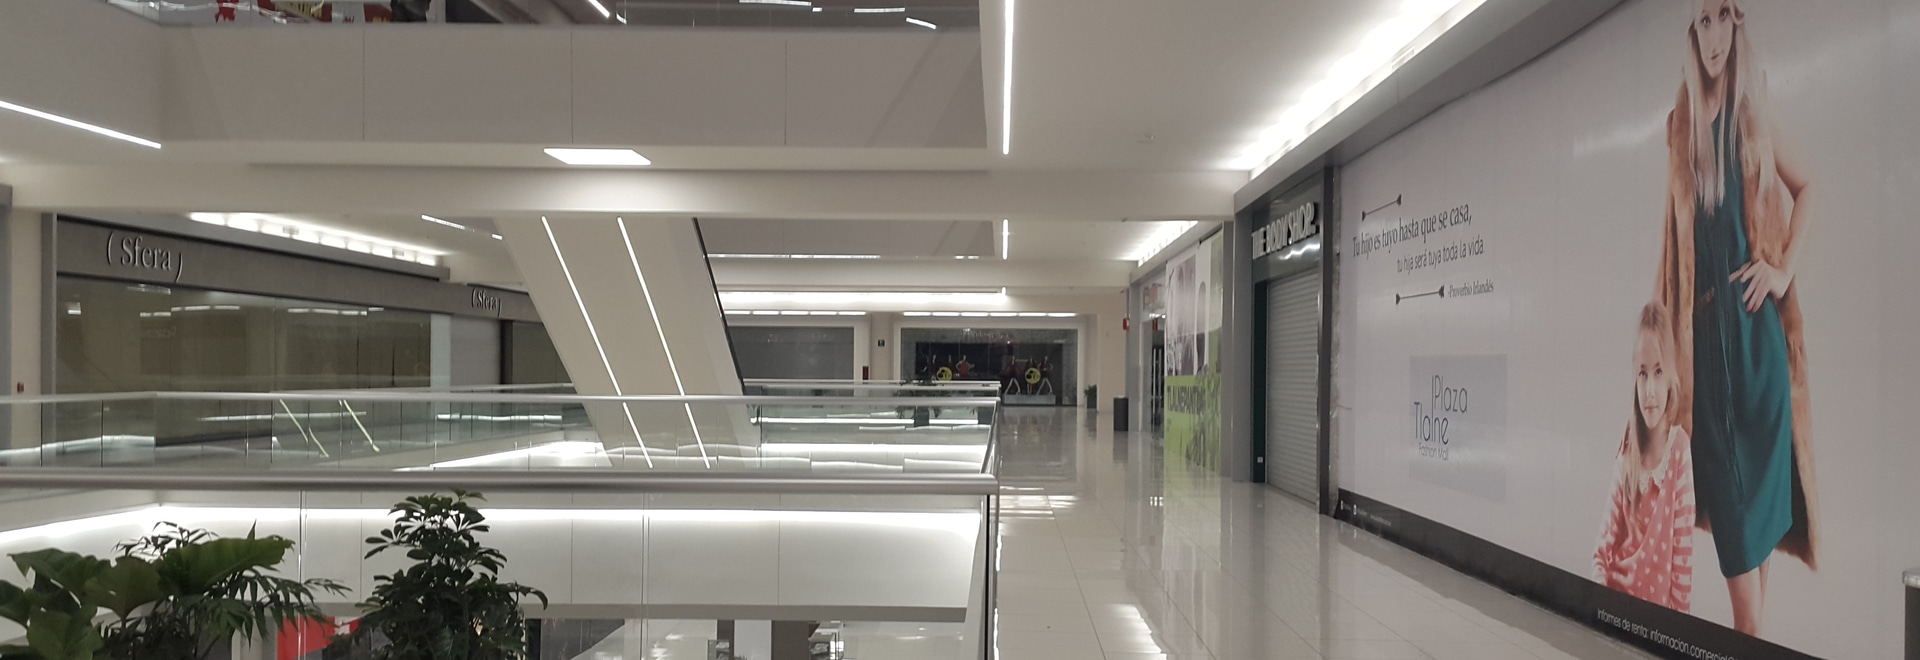 Lighting in commercial spaces